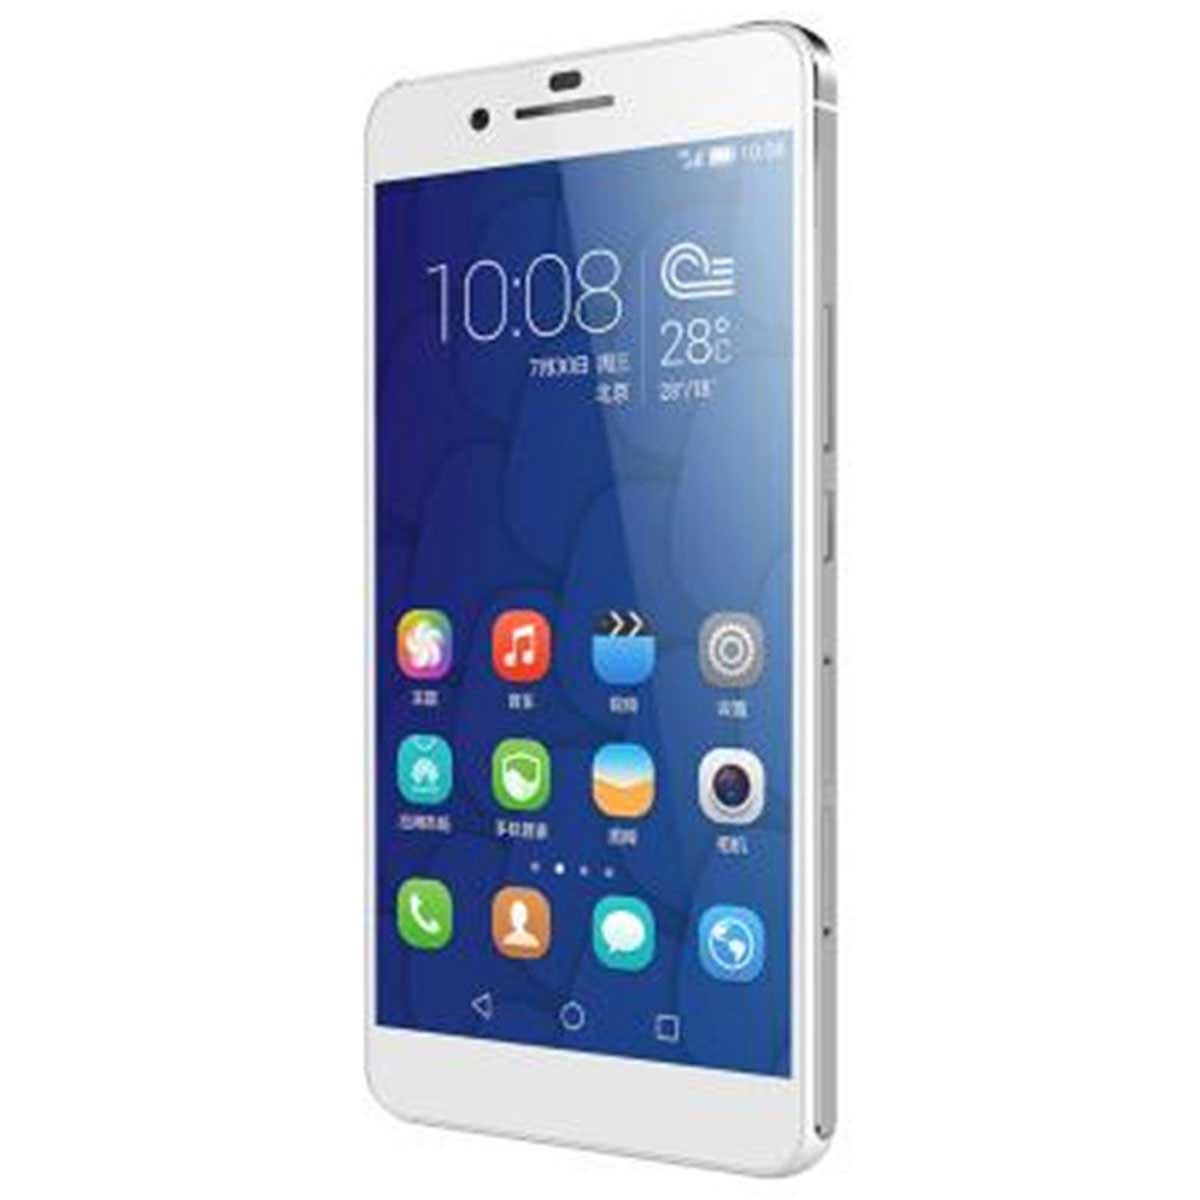 Huawei Honor 6 Plus Android 4.4 4G Phone w/ 3GB RAM, 16GB ...